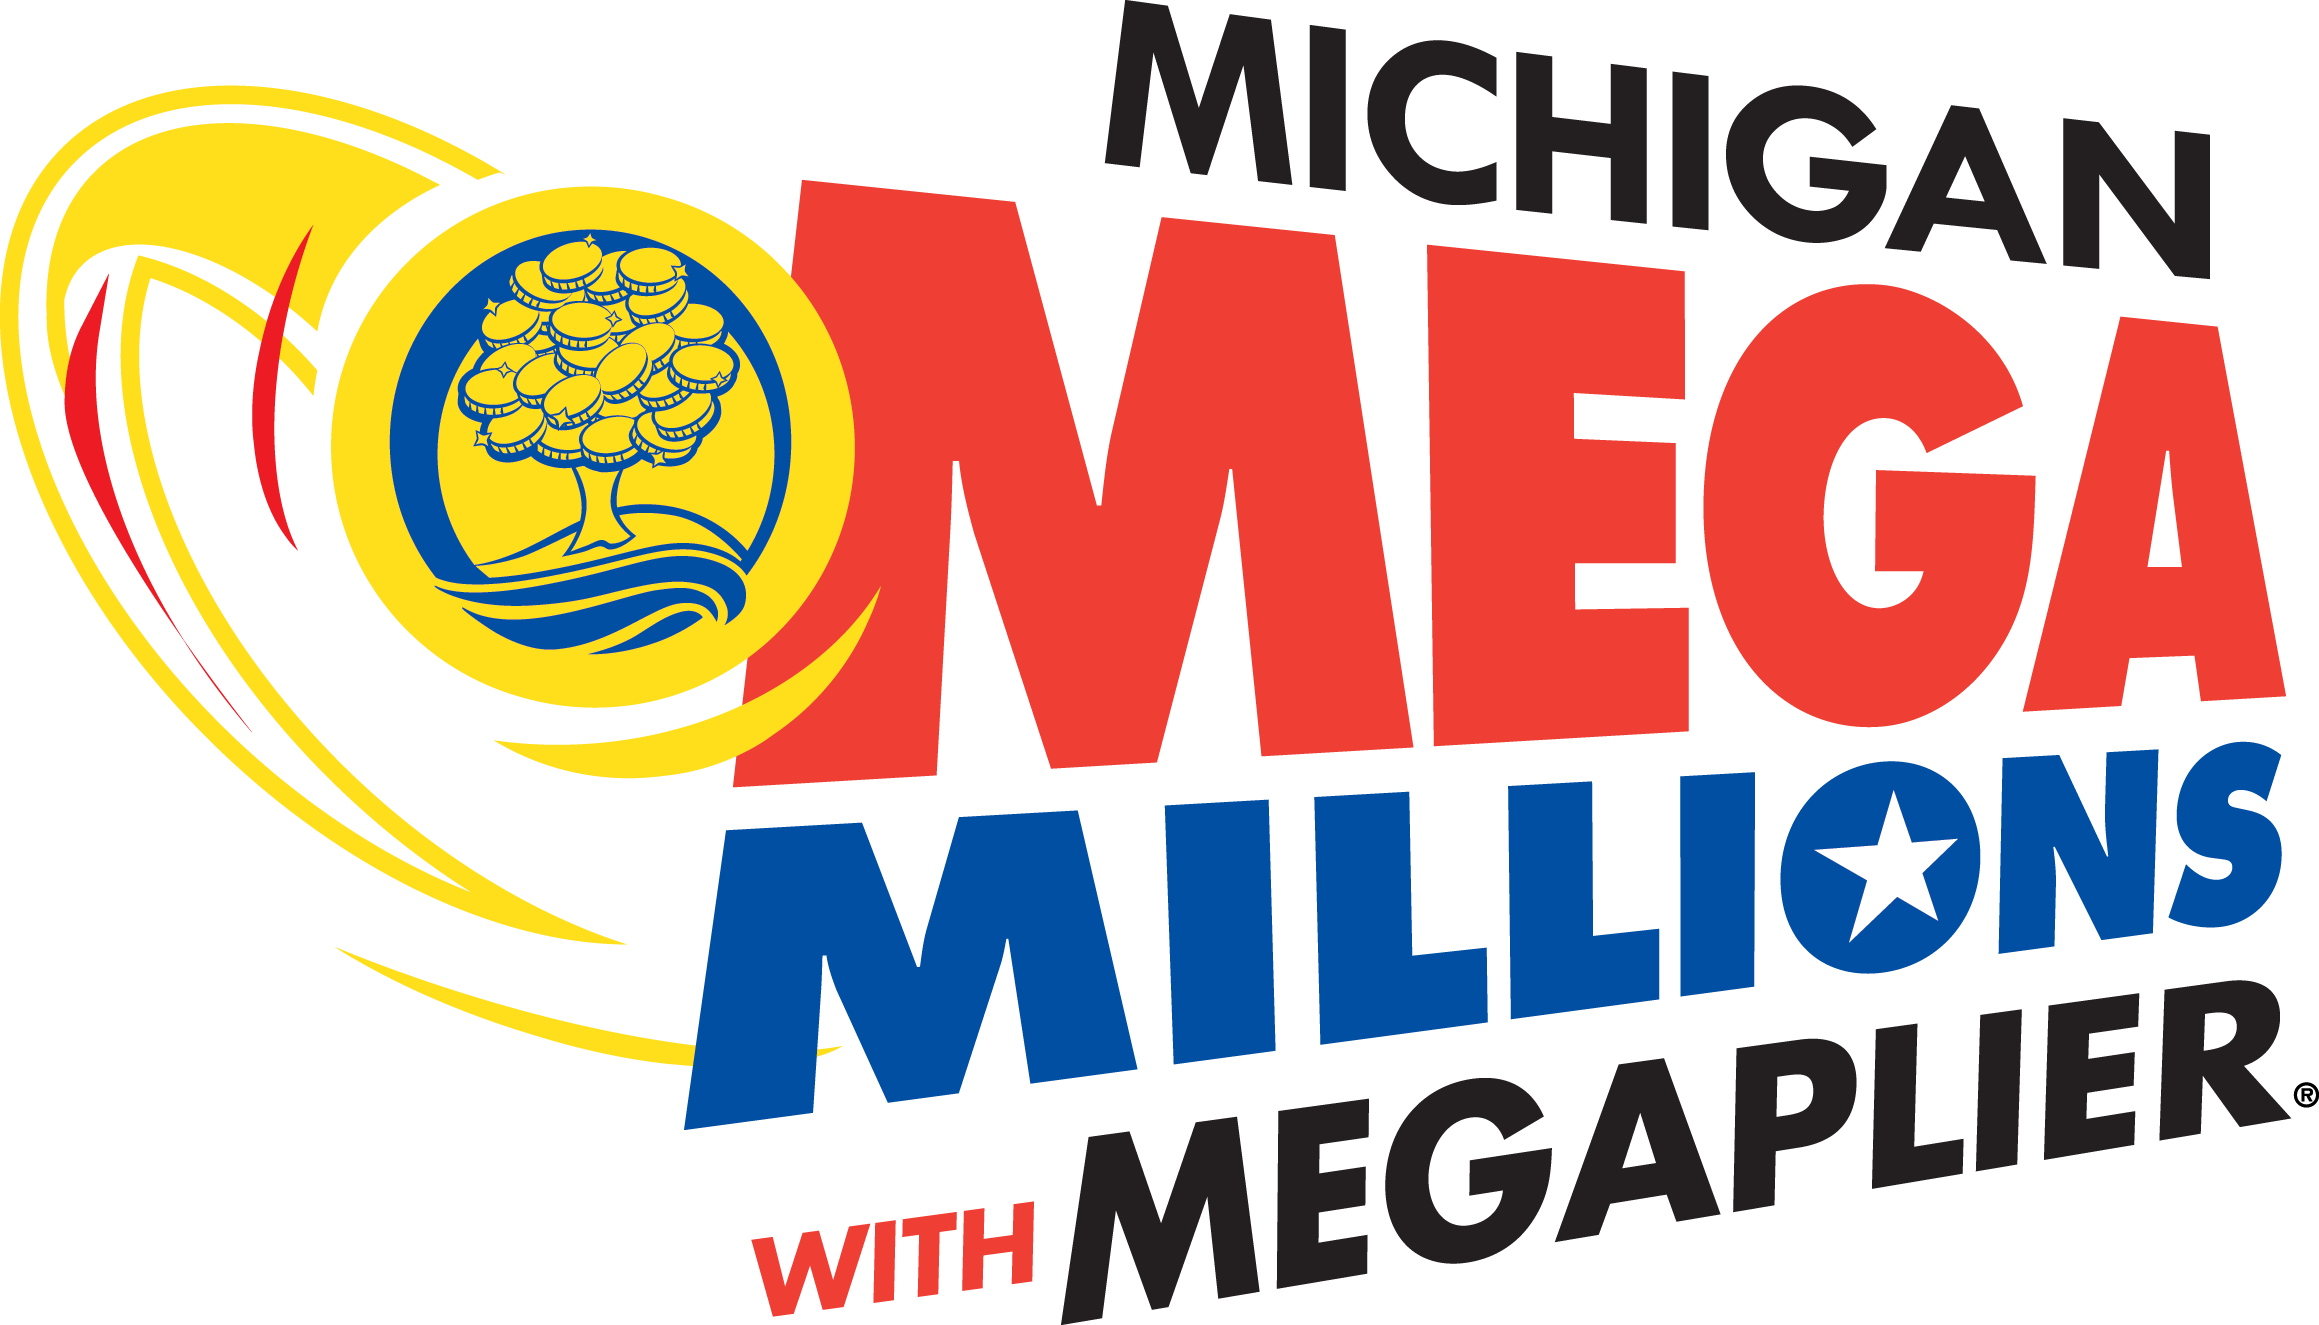 Michigan keno past results